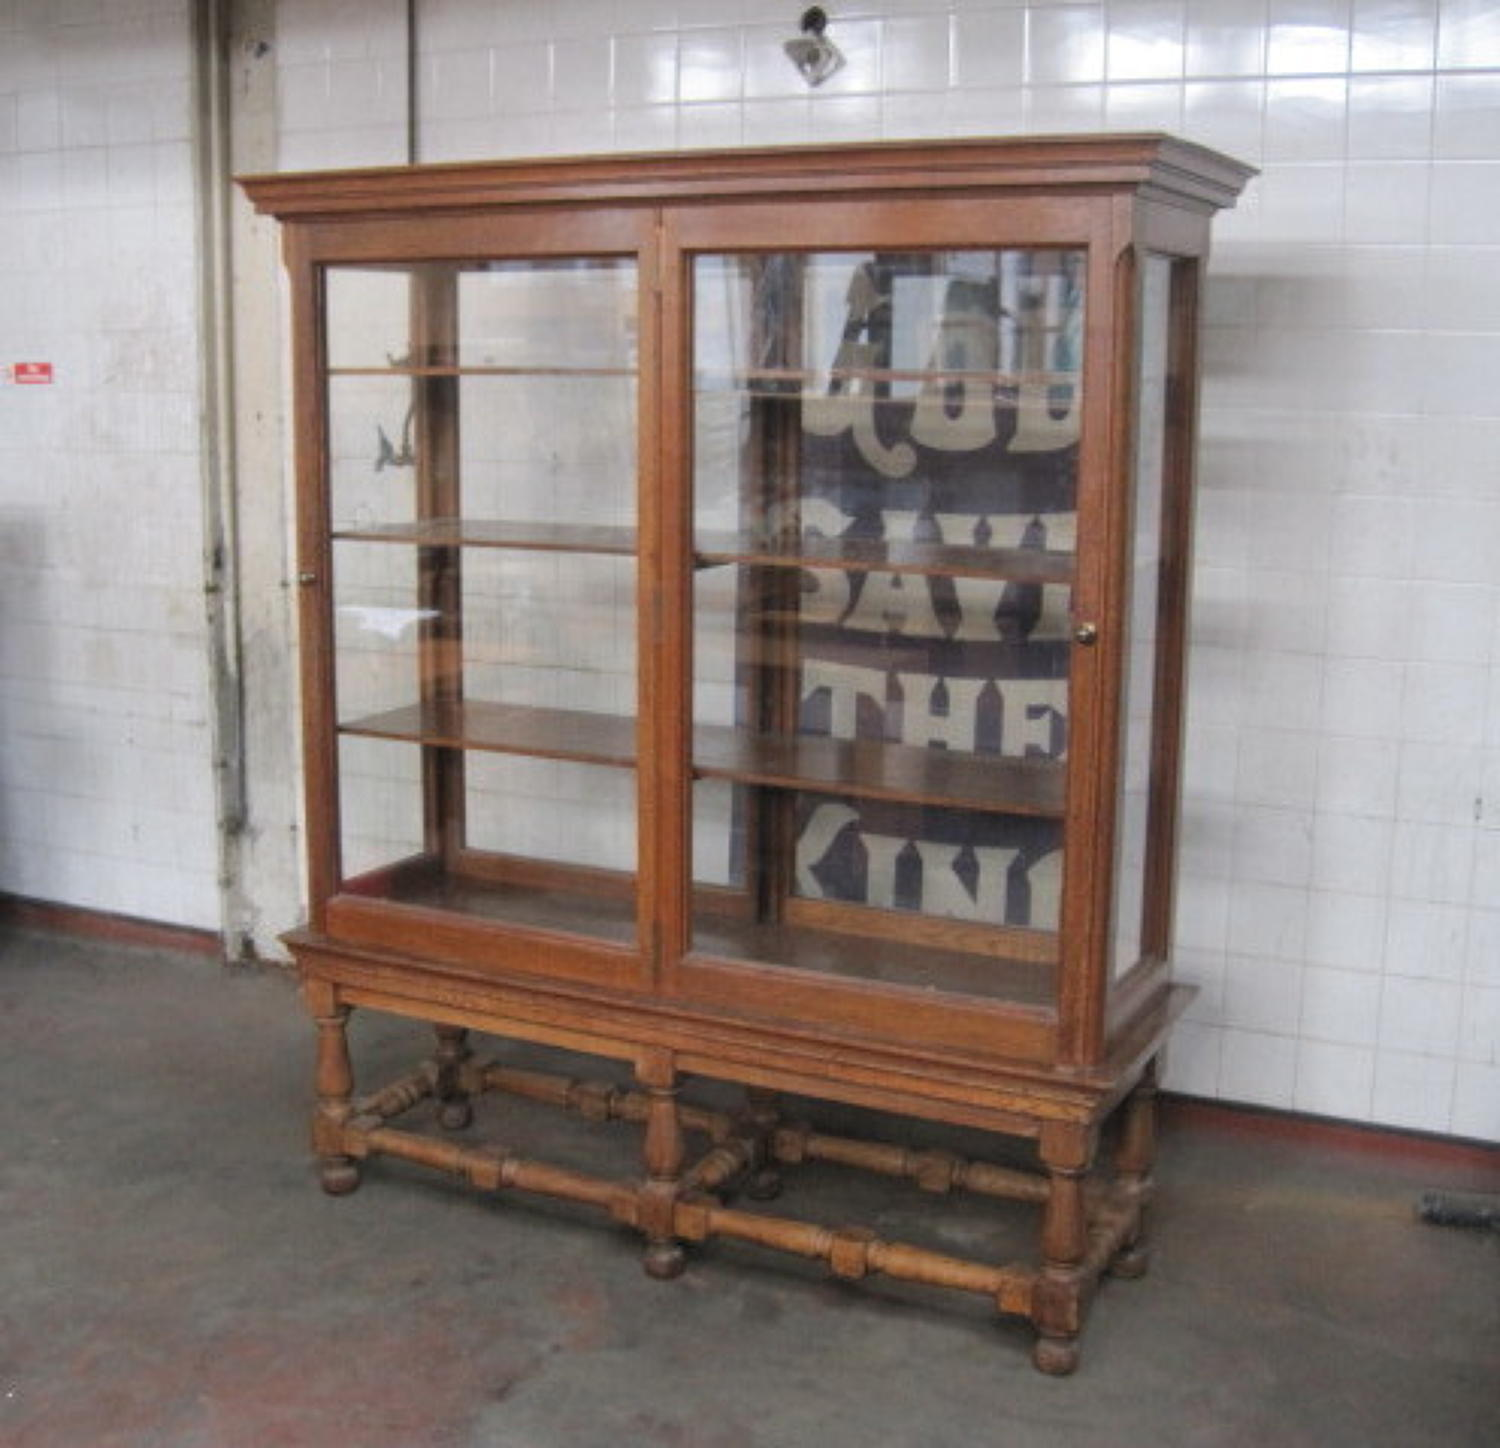 Shop or museum cabinet by Howard & Sons